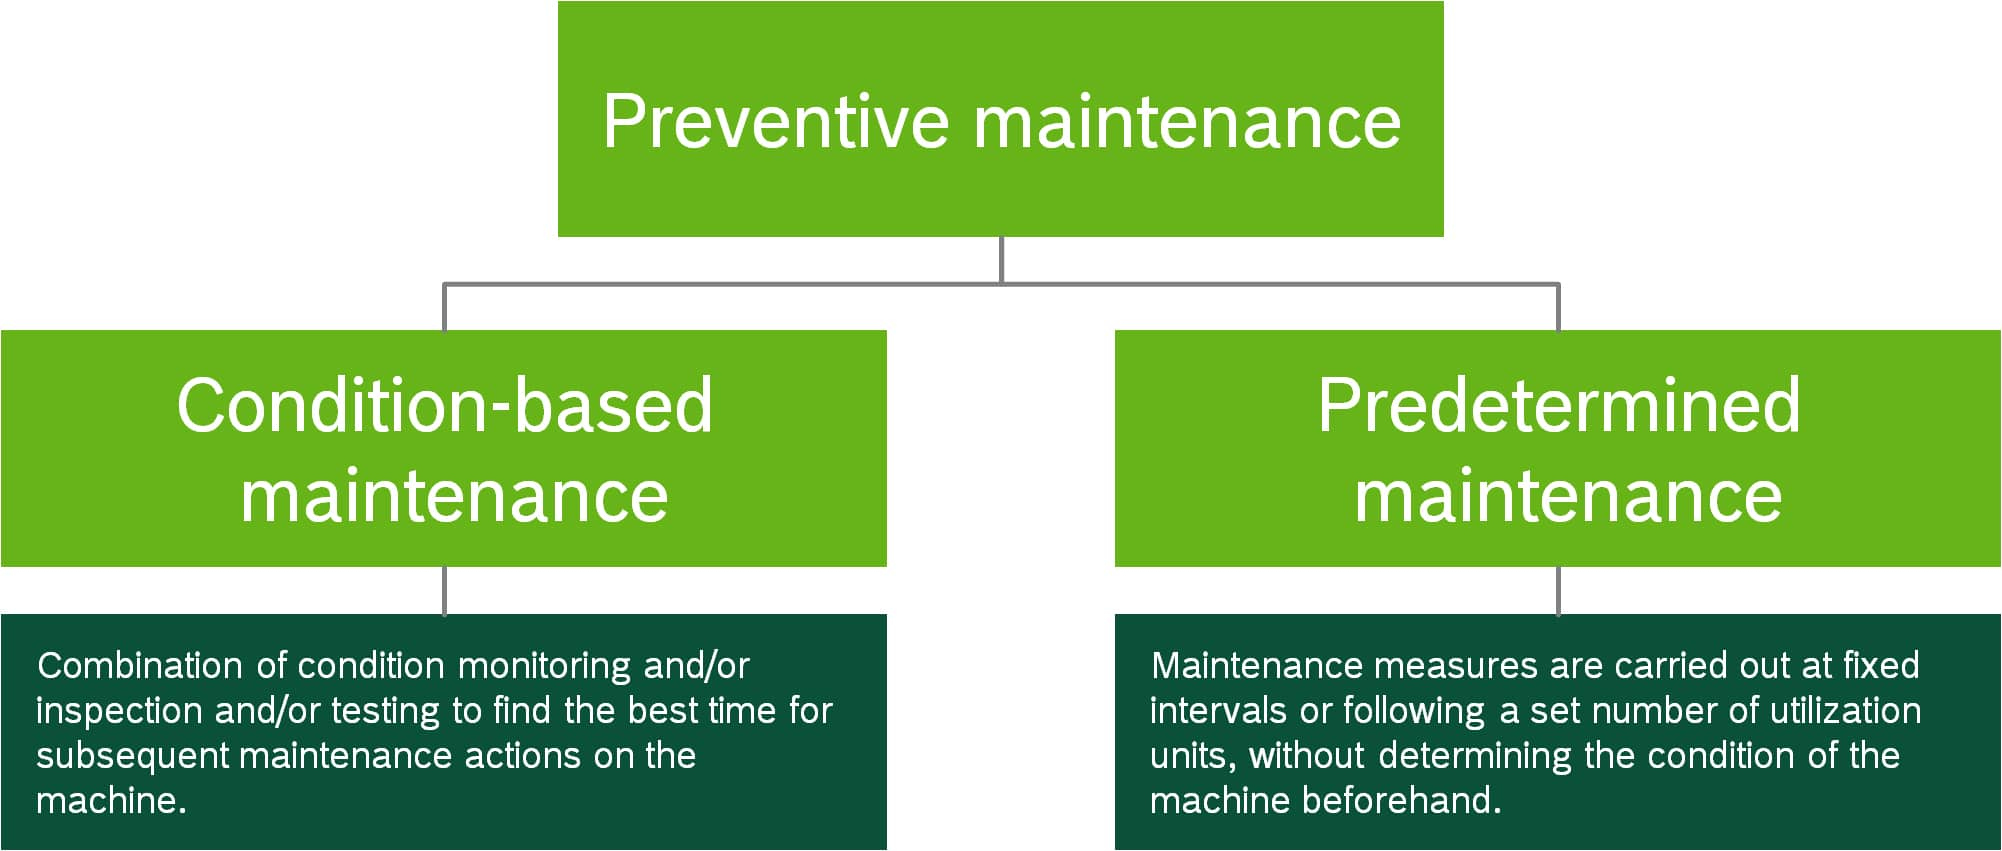 Infographic showing condition-based maintenance and predetermined maintenance lead to preventive maintenance.